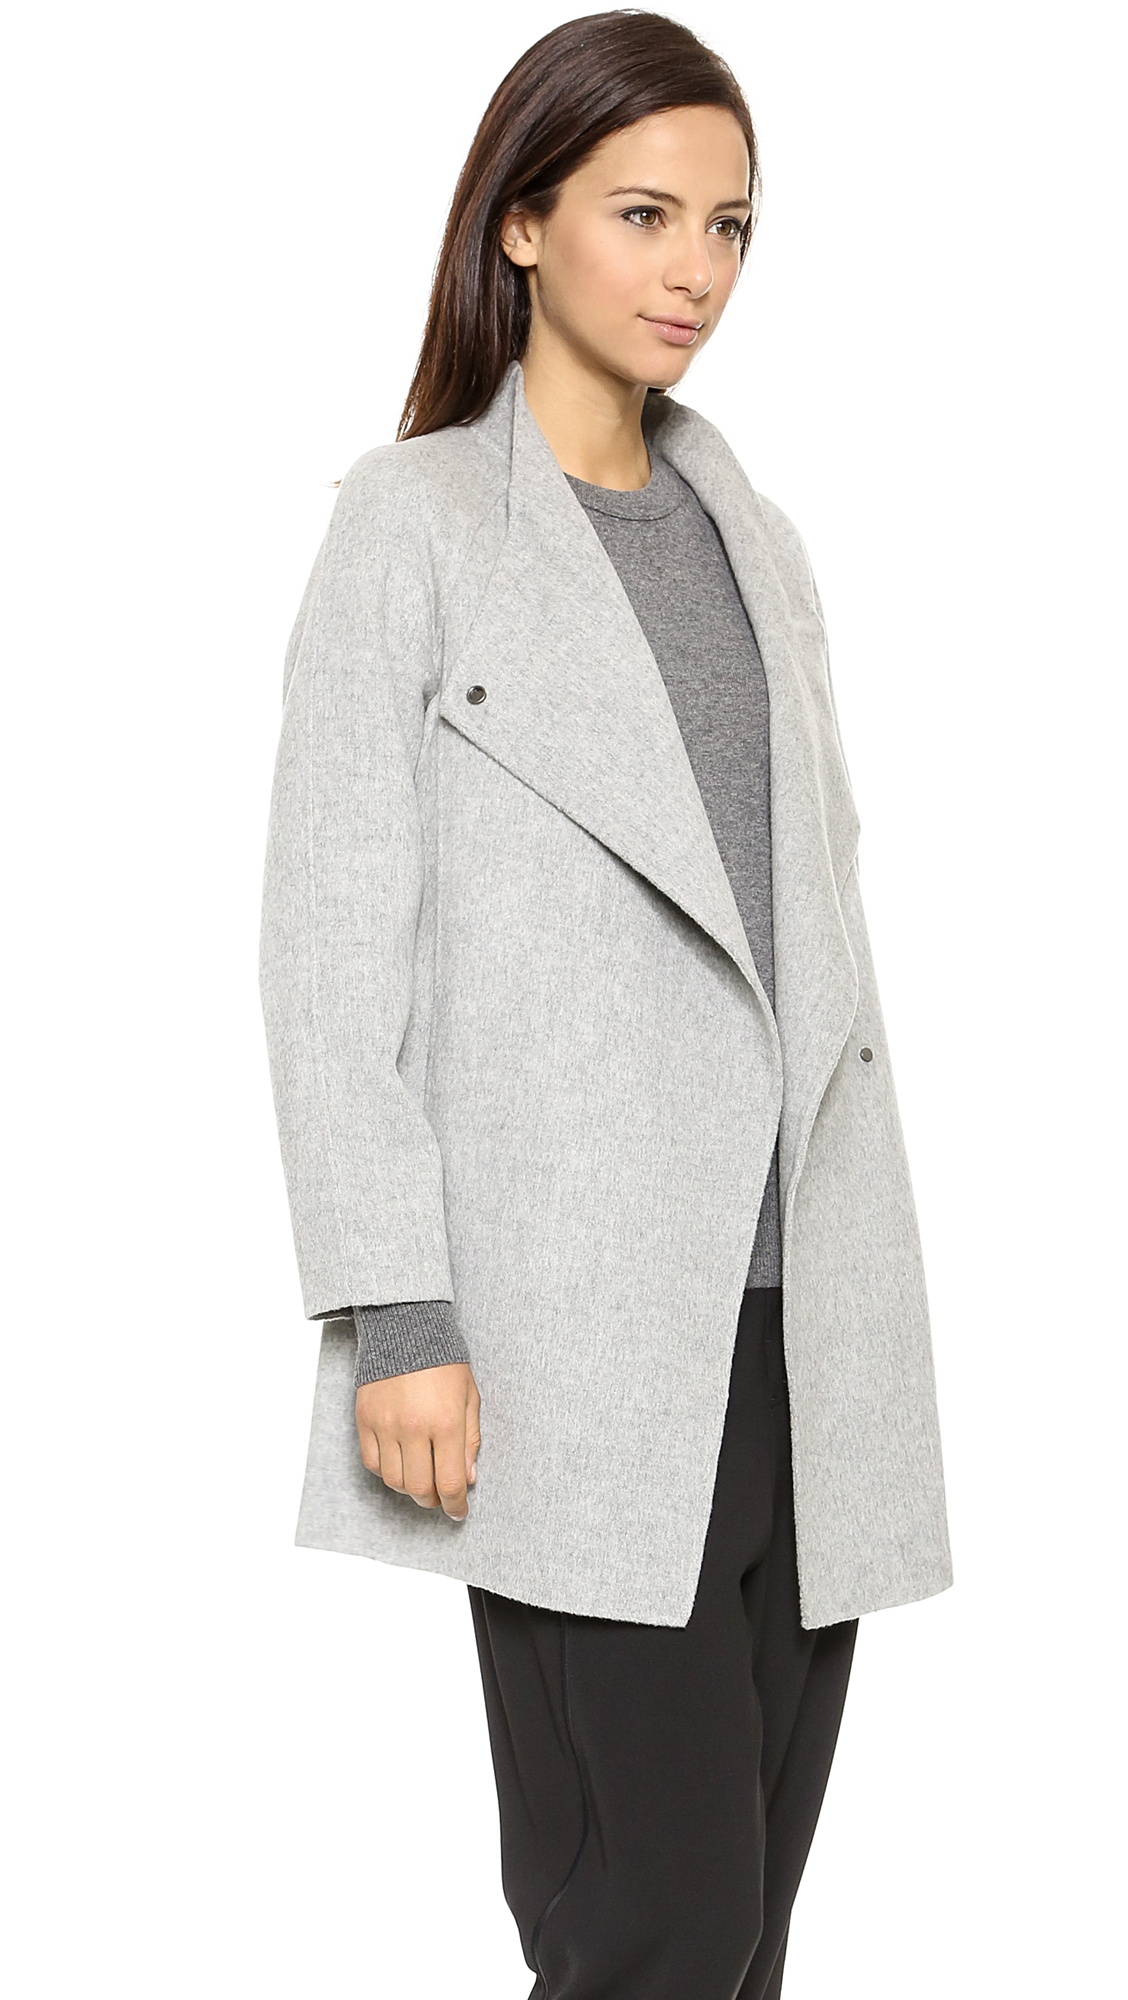 Vince Sweater Back Coat - Light Heather Grey in Gray | Lyst